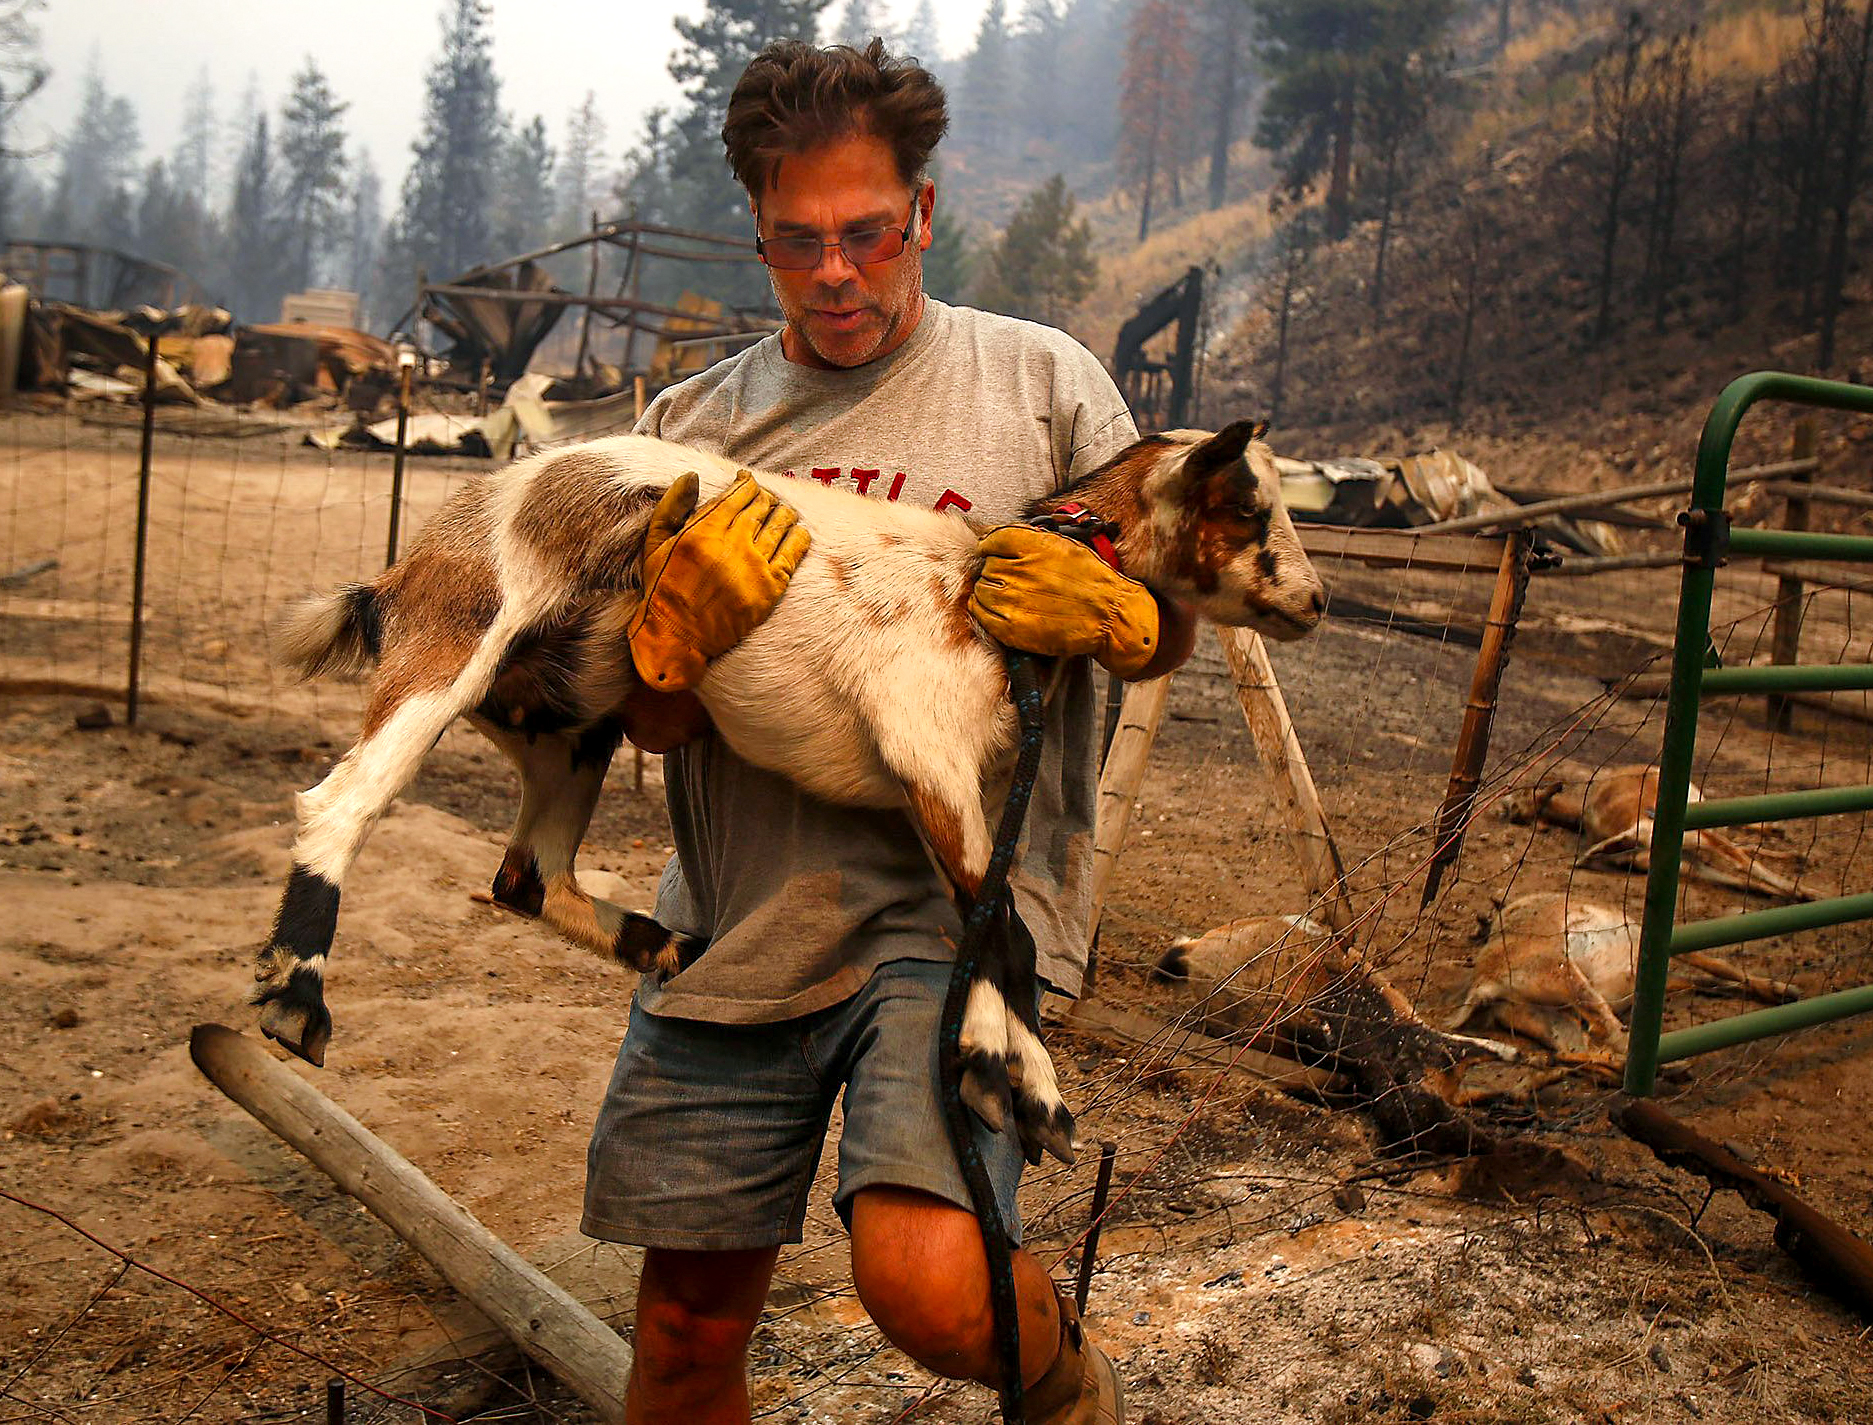 Flames, anguish strike Chelan as spreading wildfires burn homes   Composed of five massive fires, the Okanogan Complex became the second largest wildfire in state history, burning over 304,782 acres.